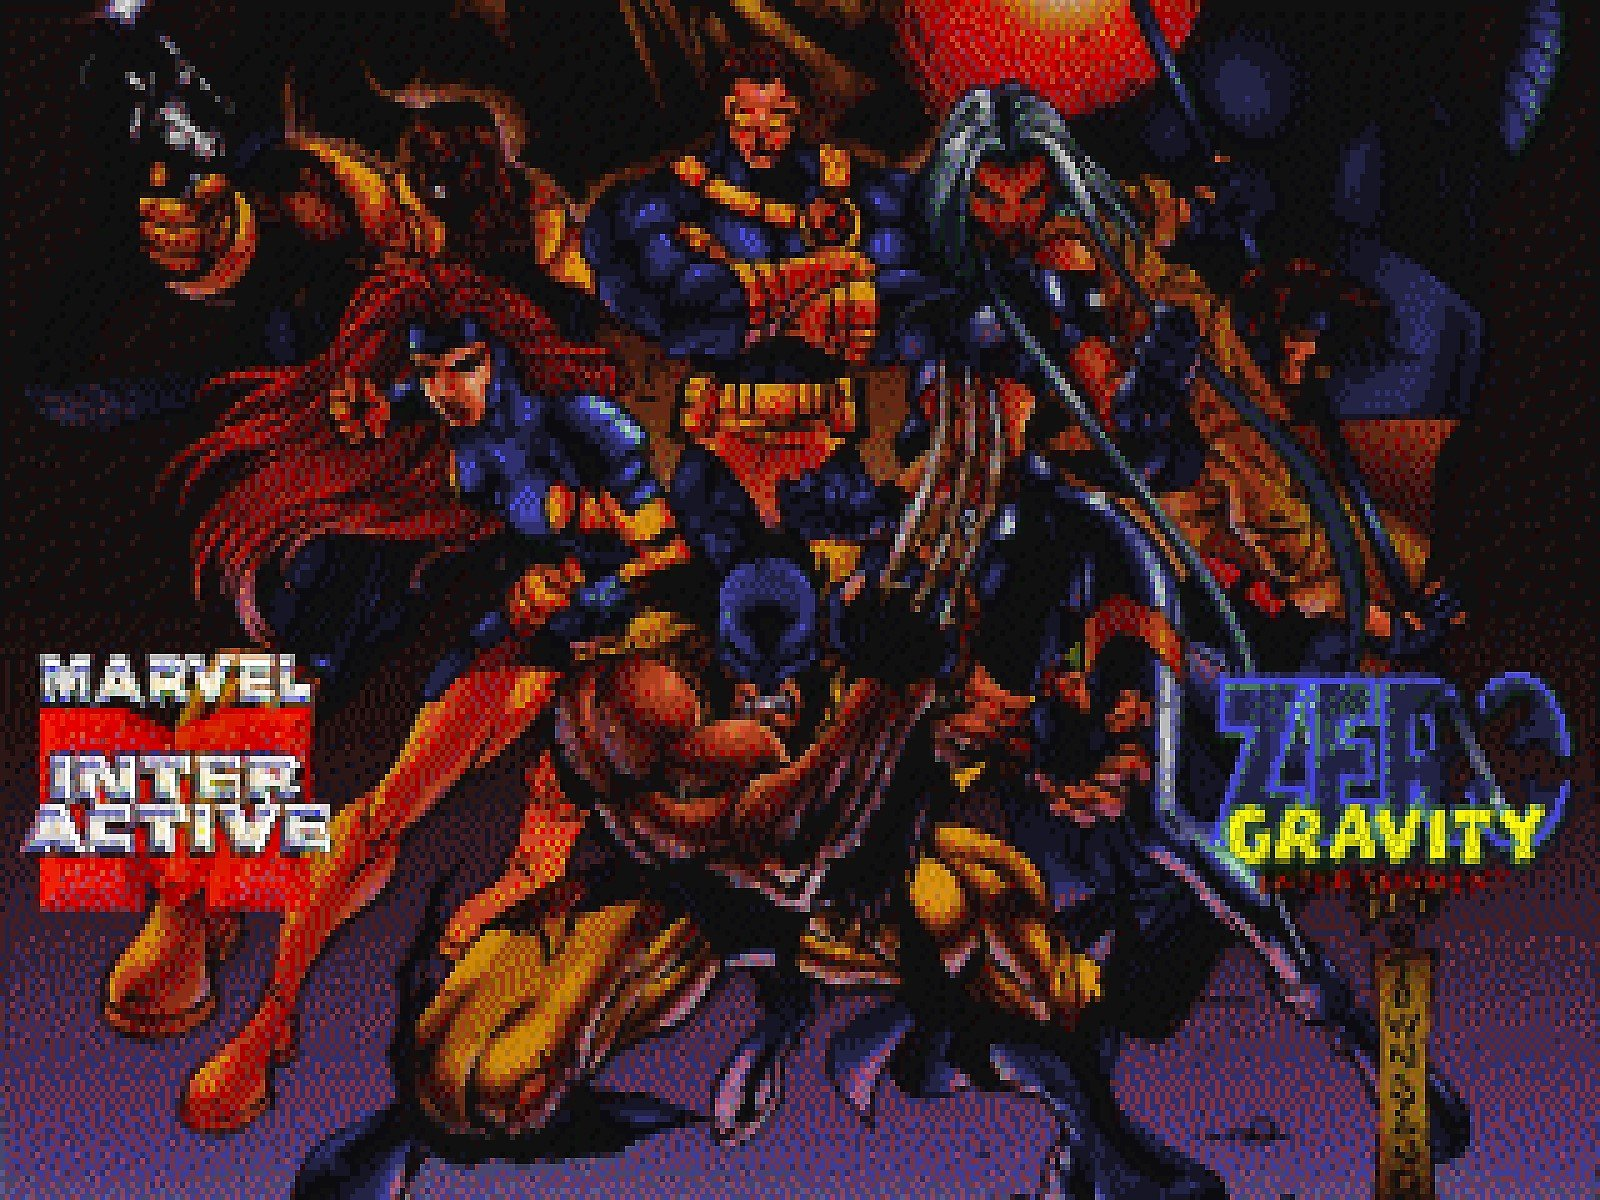 X-Men: The Ravages of Apocalypse soundtrack for freeware